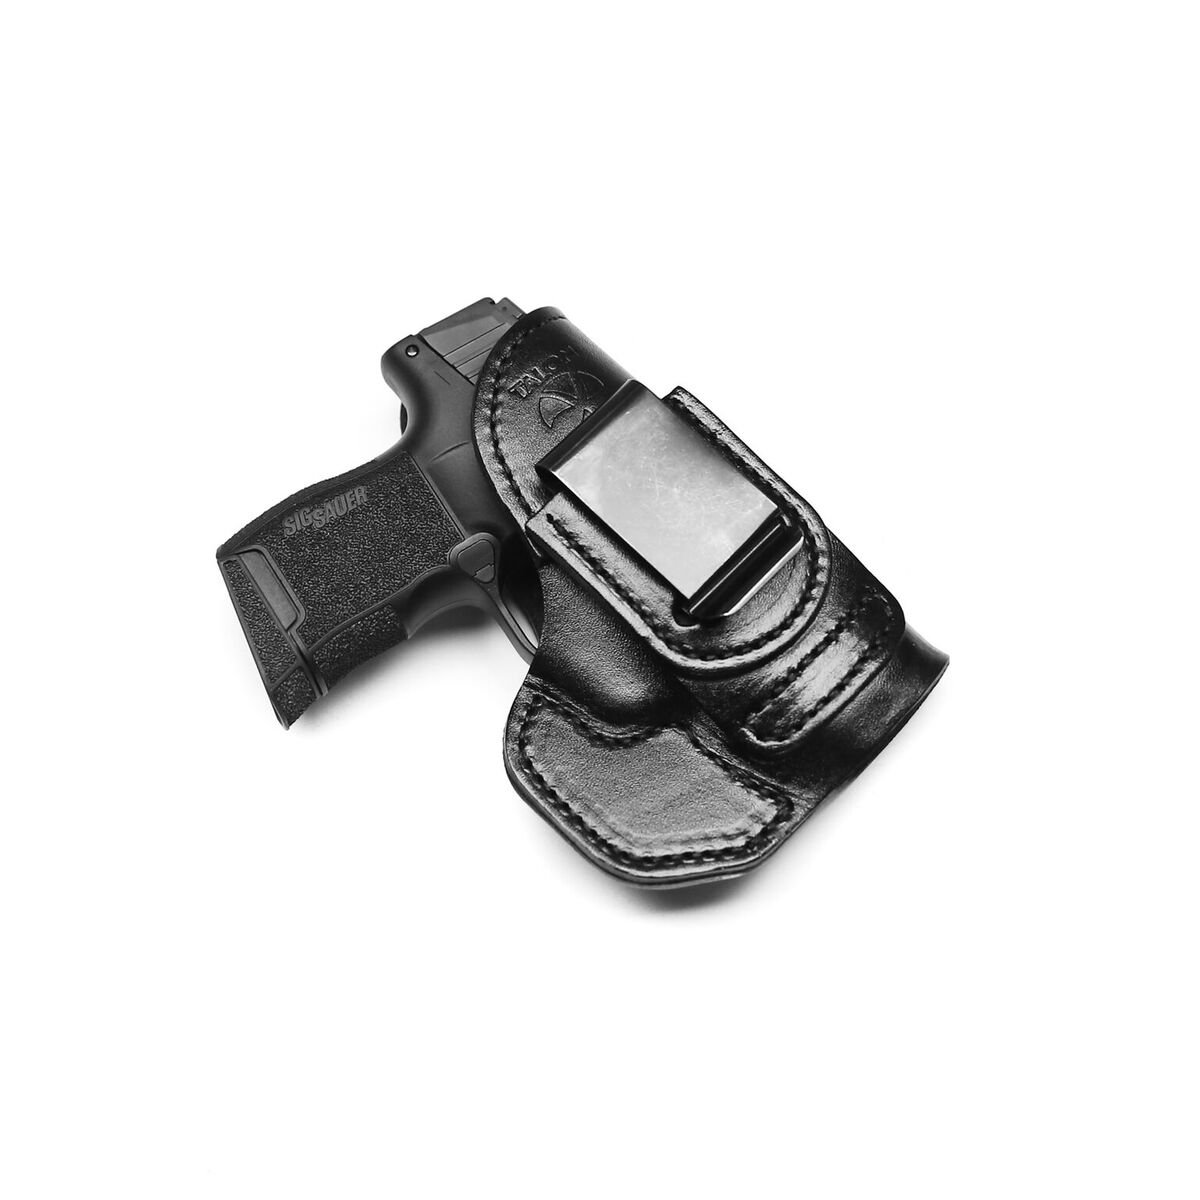 Talon Concealed Carry Tuckable IWB Leather Holsters